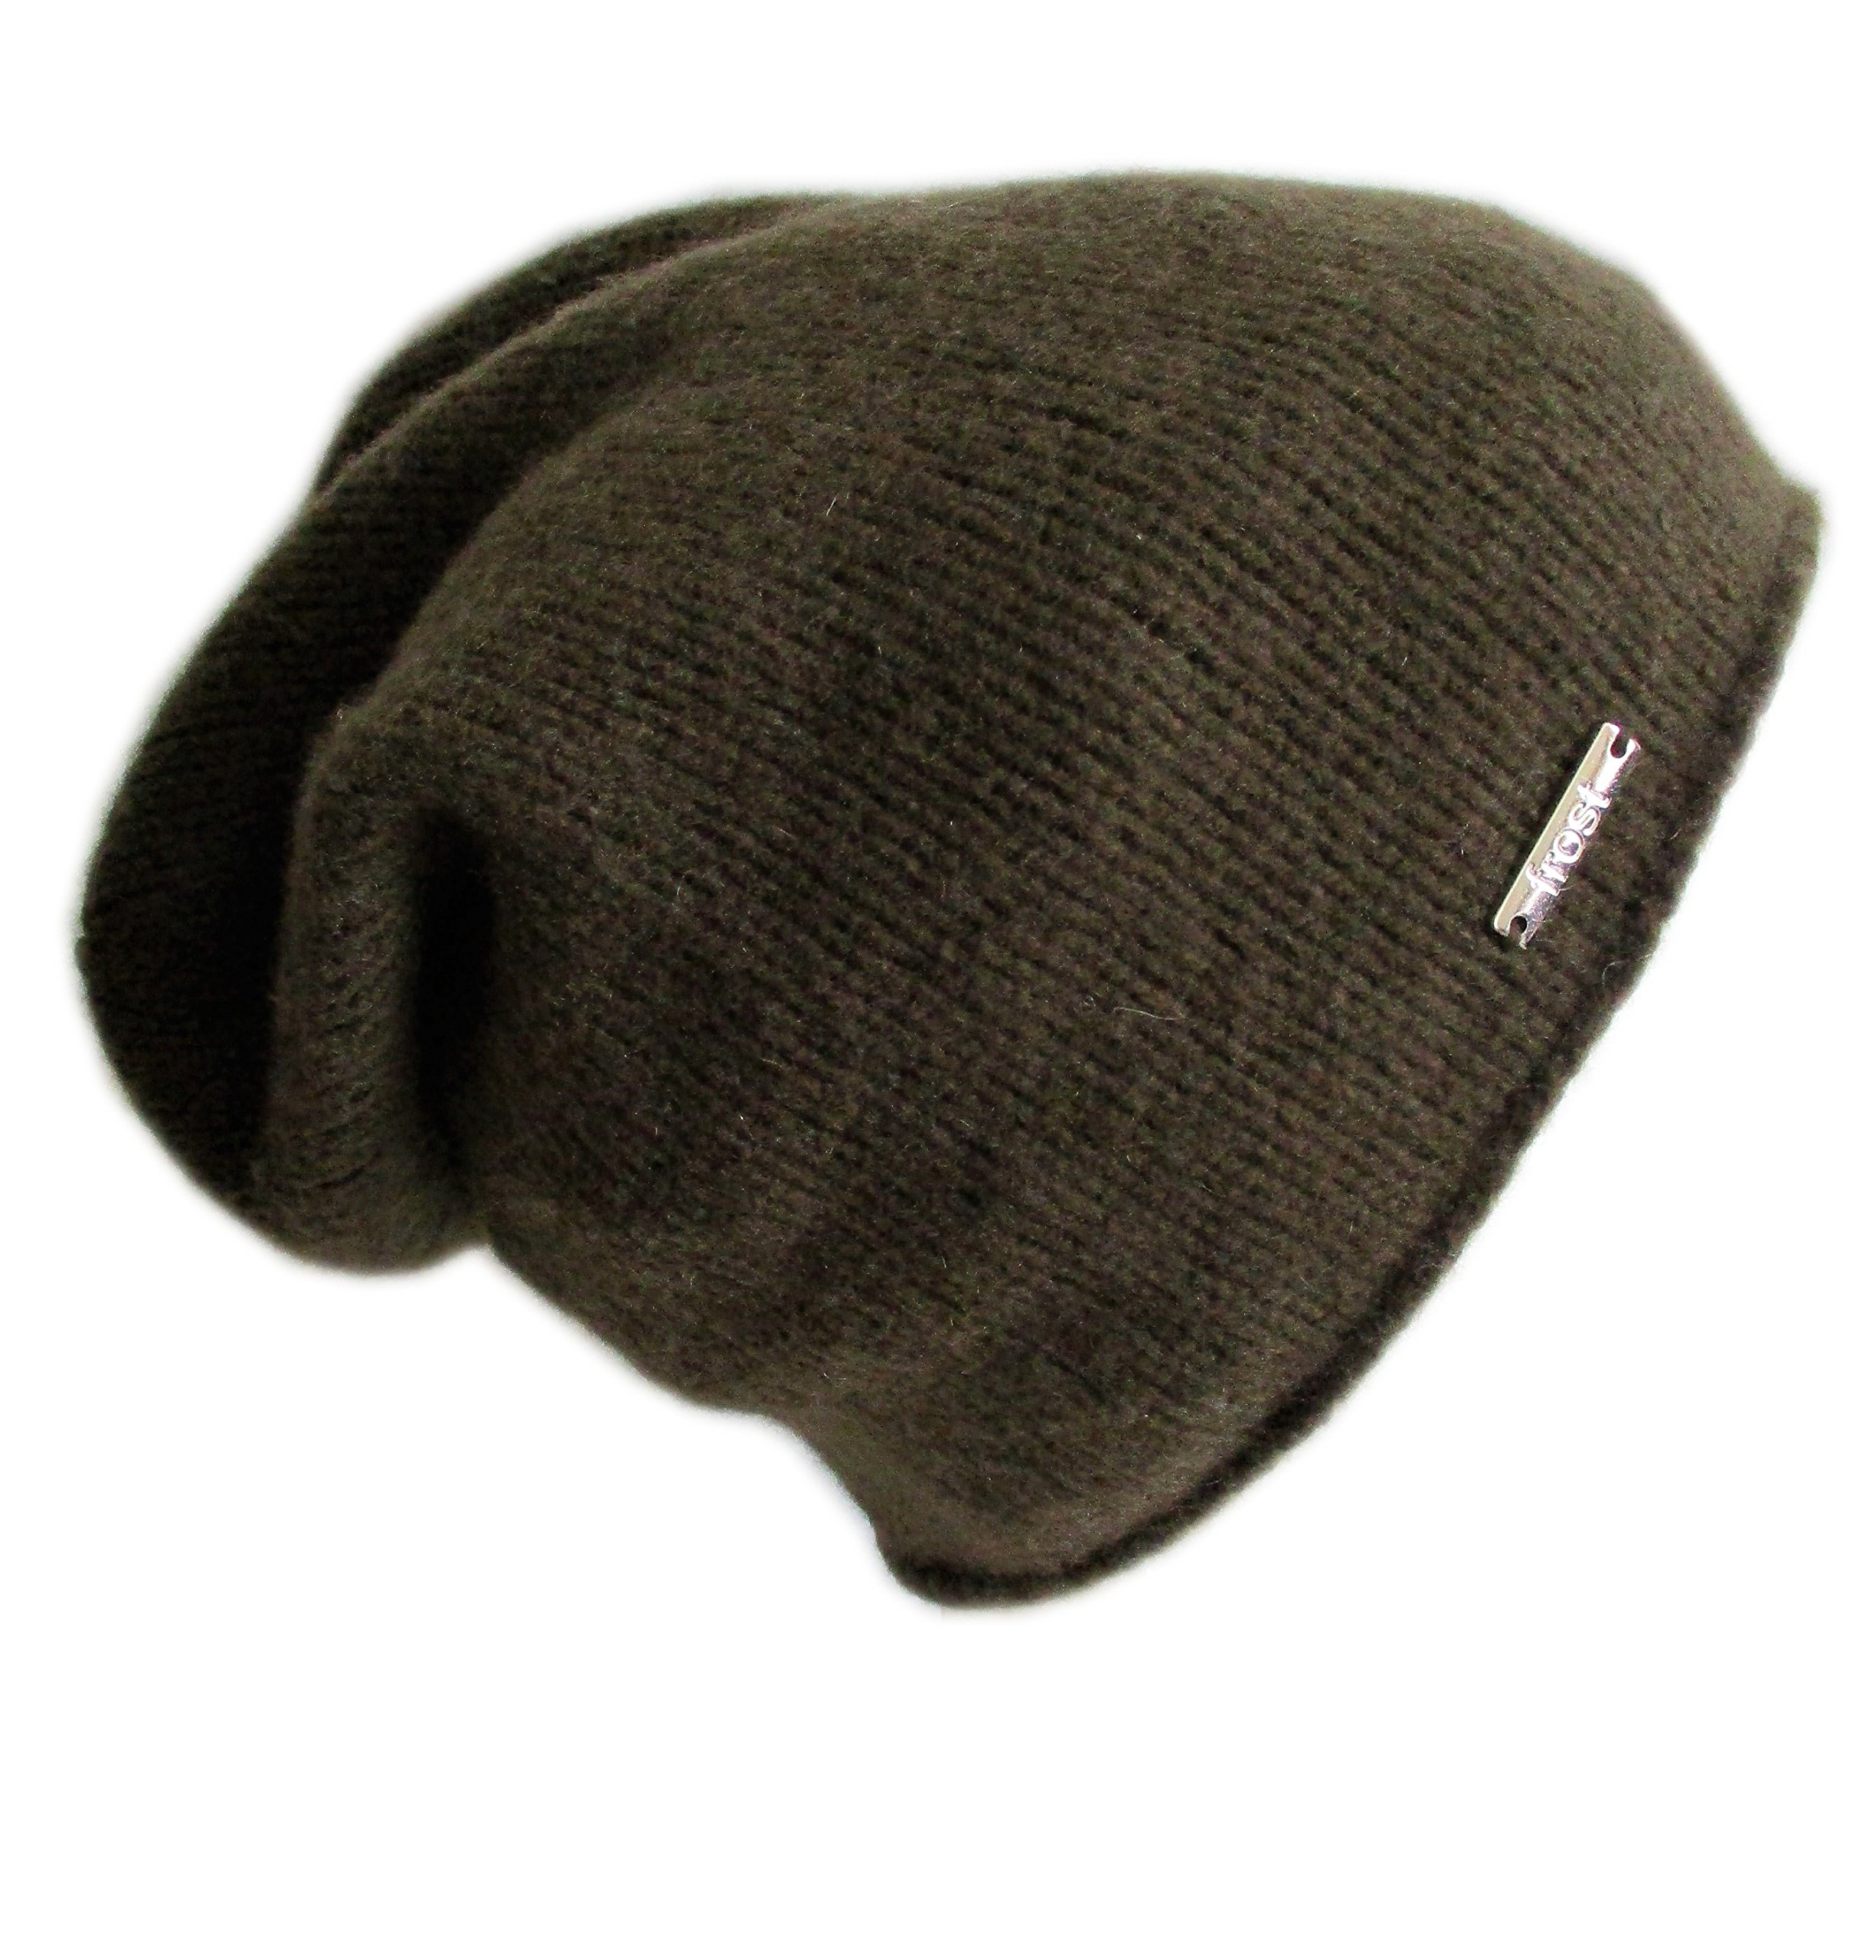 Frost Hats Italian Cashmere Slouchy Unisex Hat CSH-742-W (Olive Green) by Frost Hats